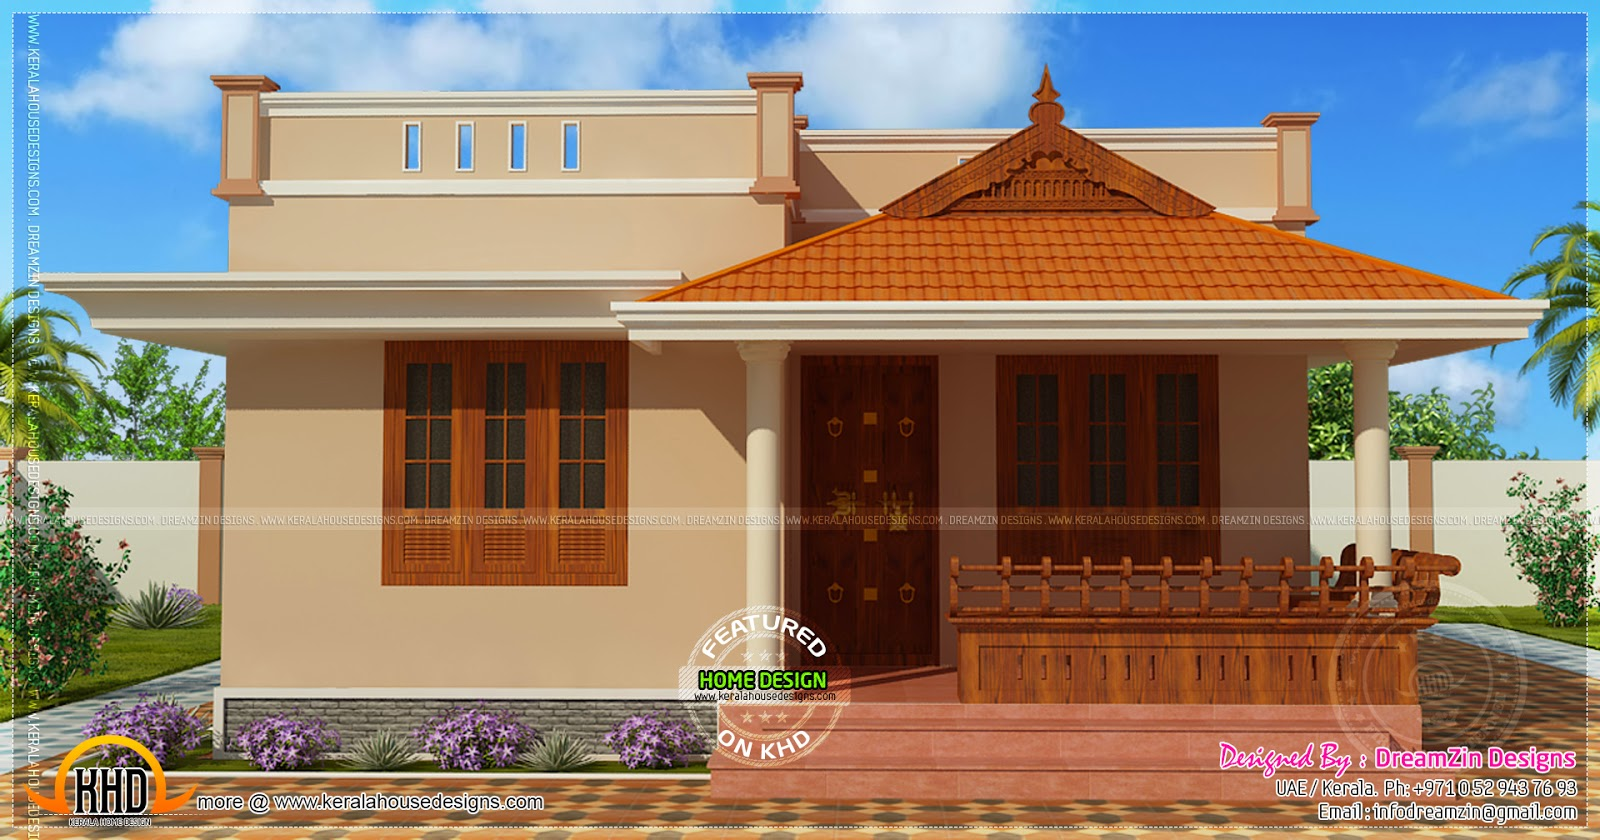 Small budget home plans design kerala male models picture for Small house design in kerala